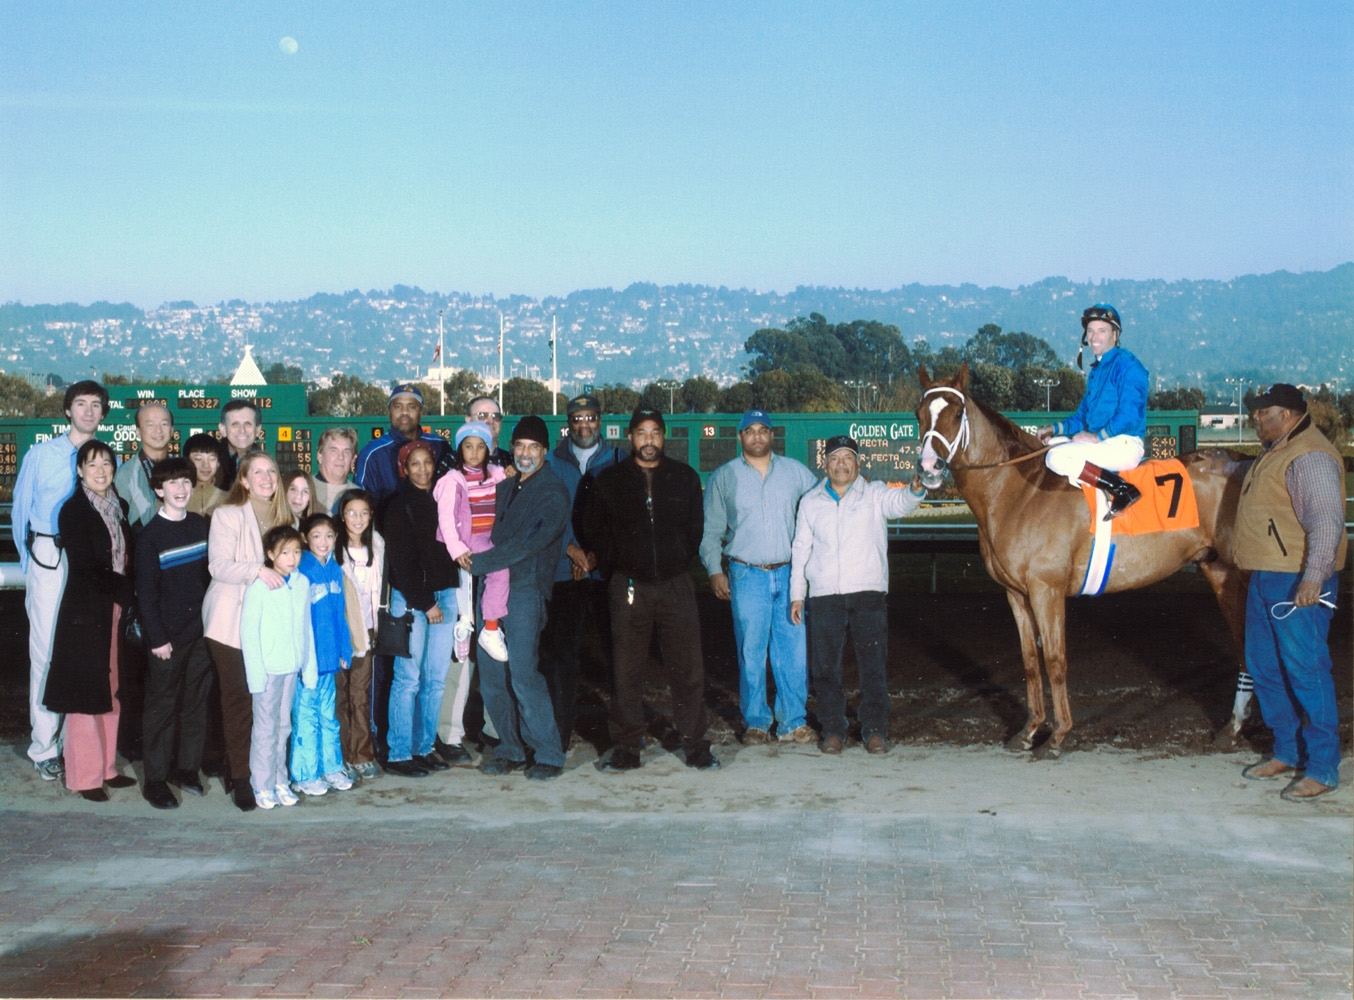 Russell Baze and Hollow Memories in the winner's circle at Golden Gate Fields. Baze would become the sport's winningest jockey in 2006 (Golden Gate Fields Photo/Museum Collection)